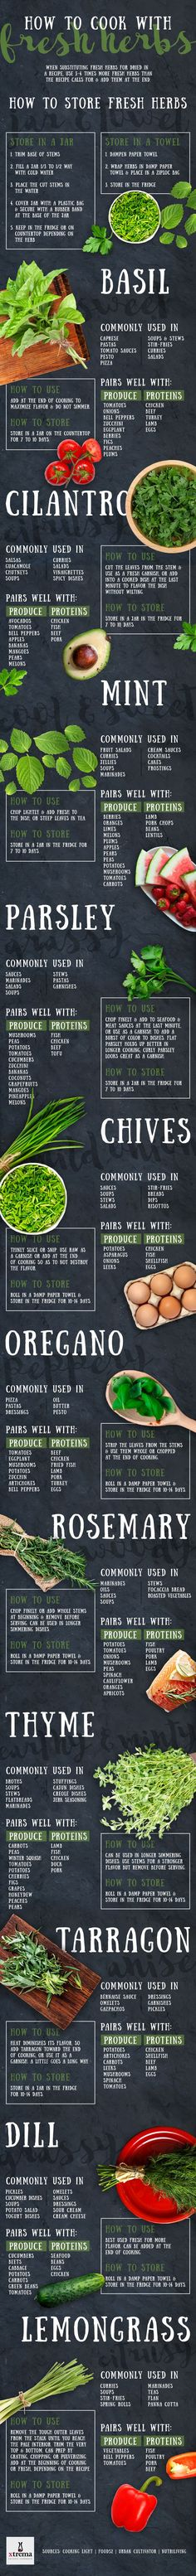 How to Cook With Fresh Herbs | Cooking and Storing Fresh Herbs